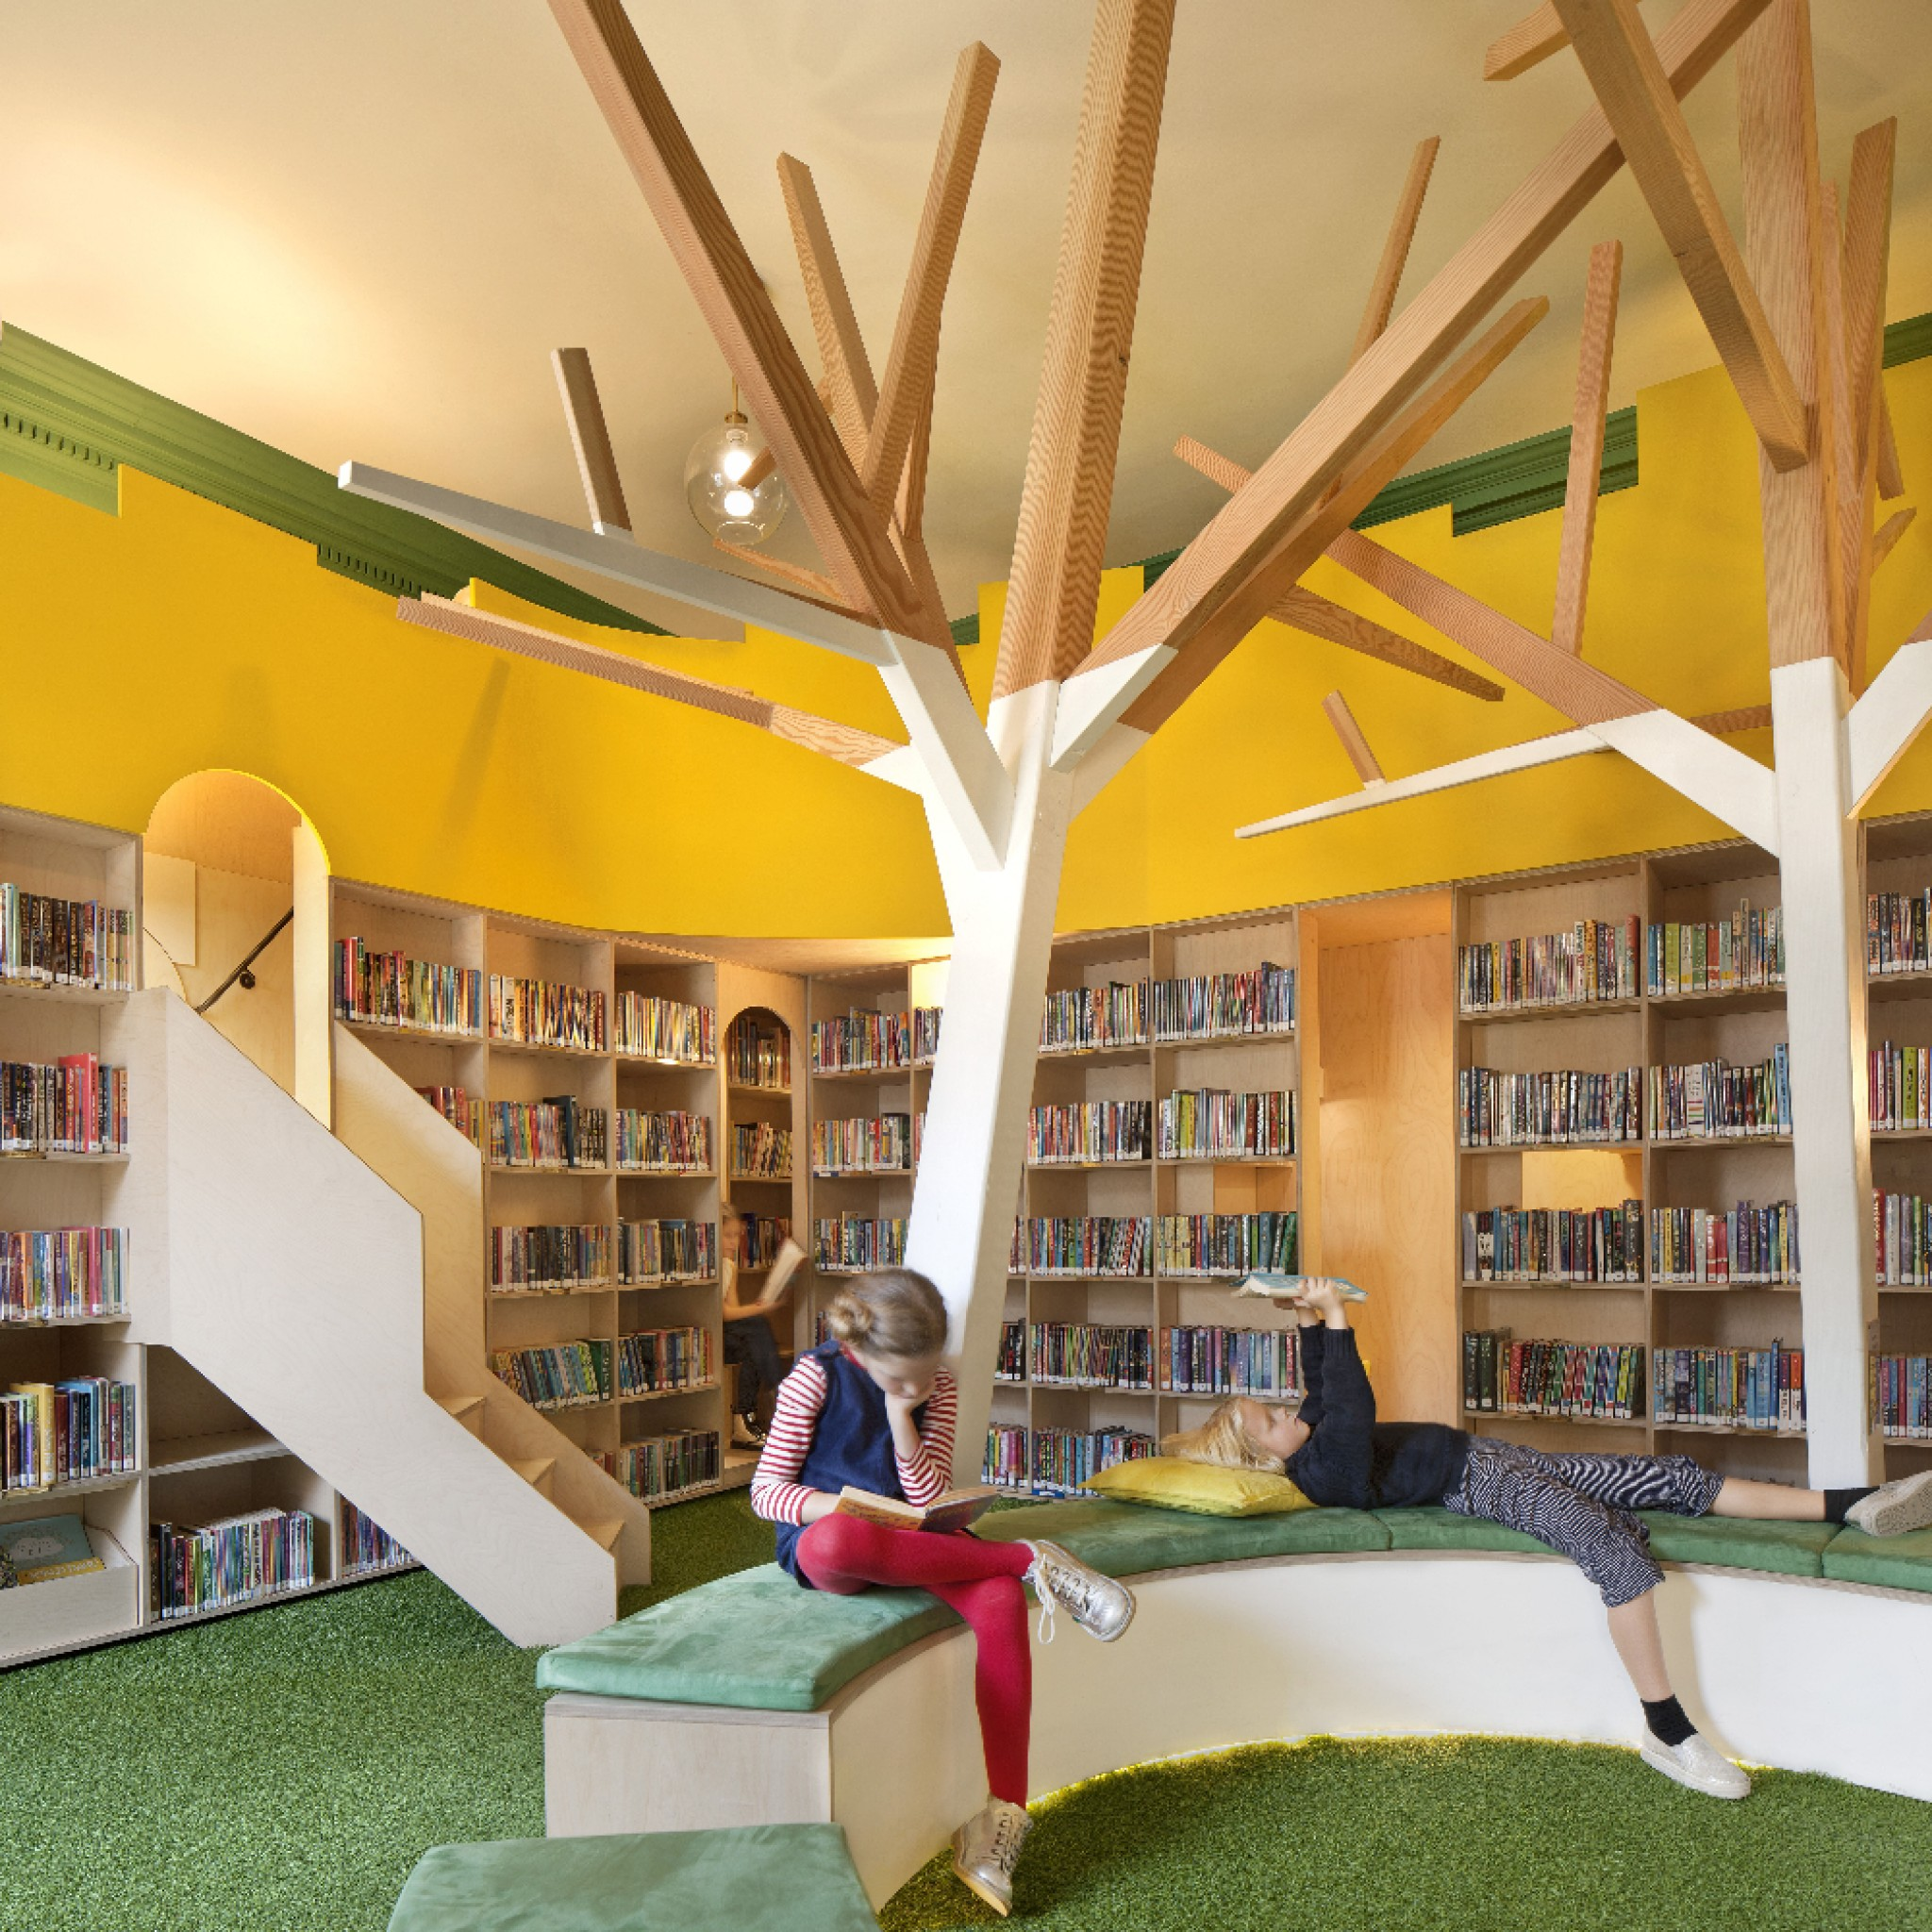 John Ramplin Room - full-height plywood walls of shelves evoke the grand libraries of the past, with a markedly playful and modern twist